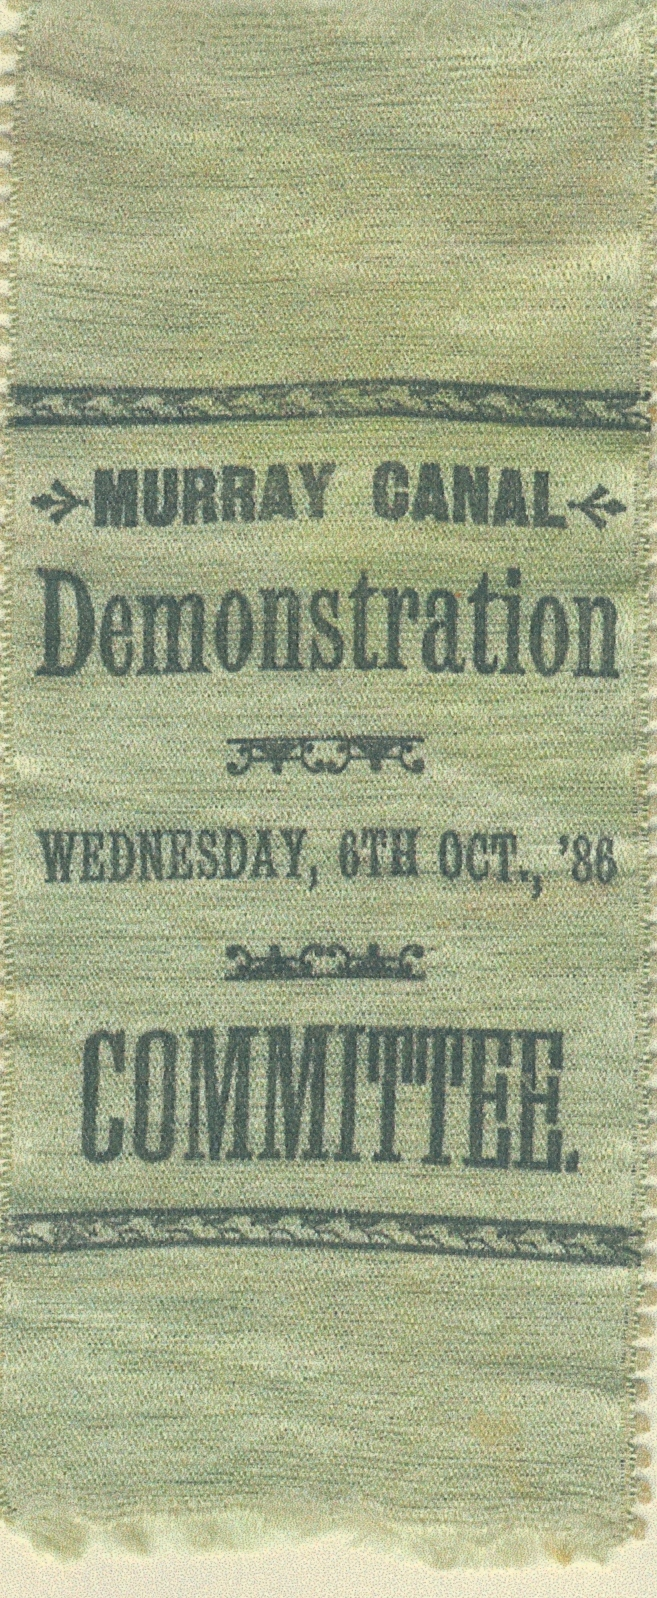 Murray Canal Ribbon, 1886.jpg